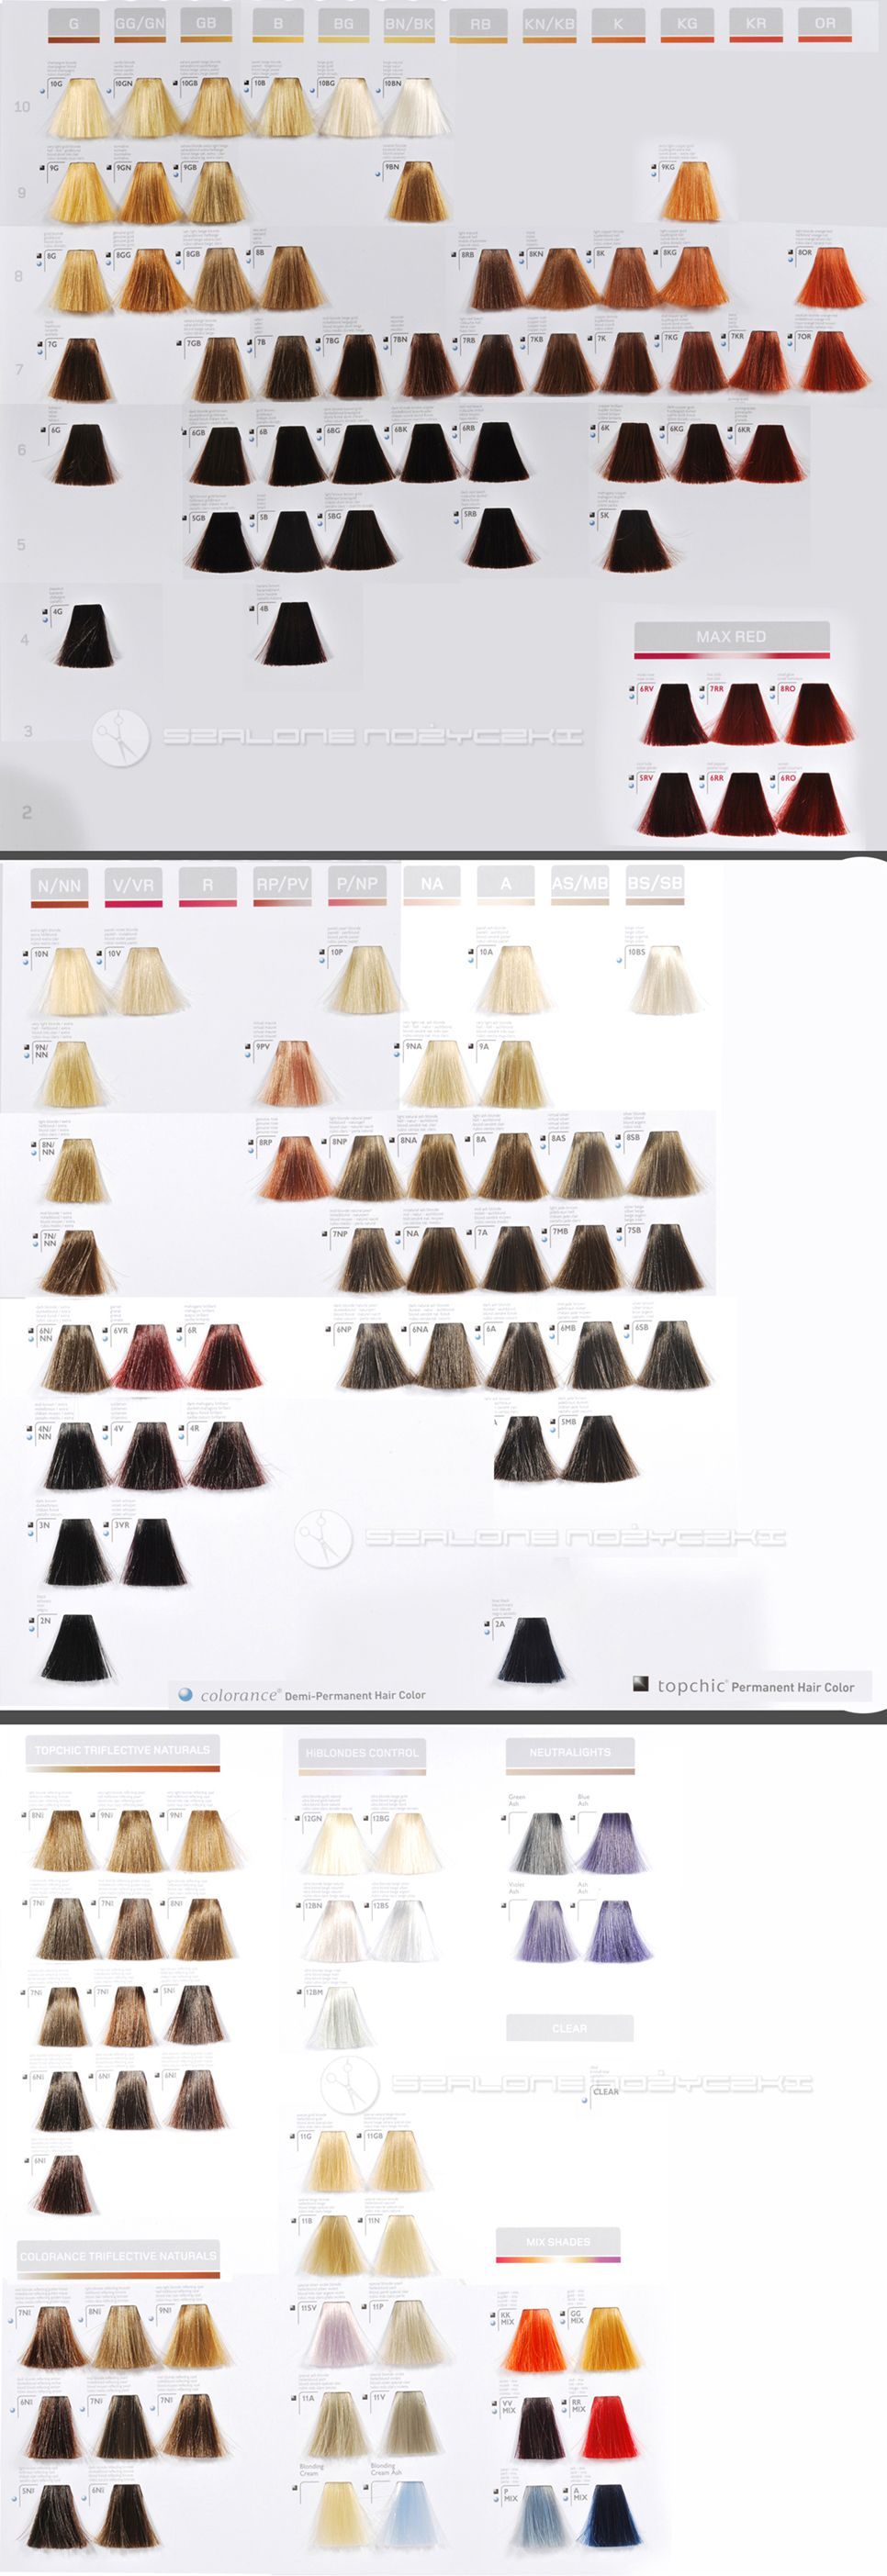 Goldwell Colour Shades Hair Color Chart Goldwell Color Chart Blonde Color Chart